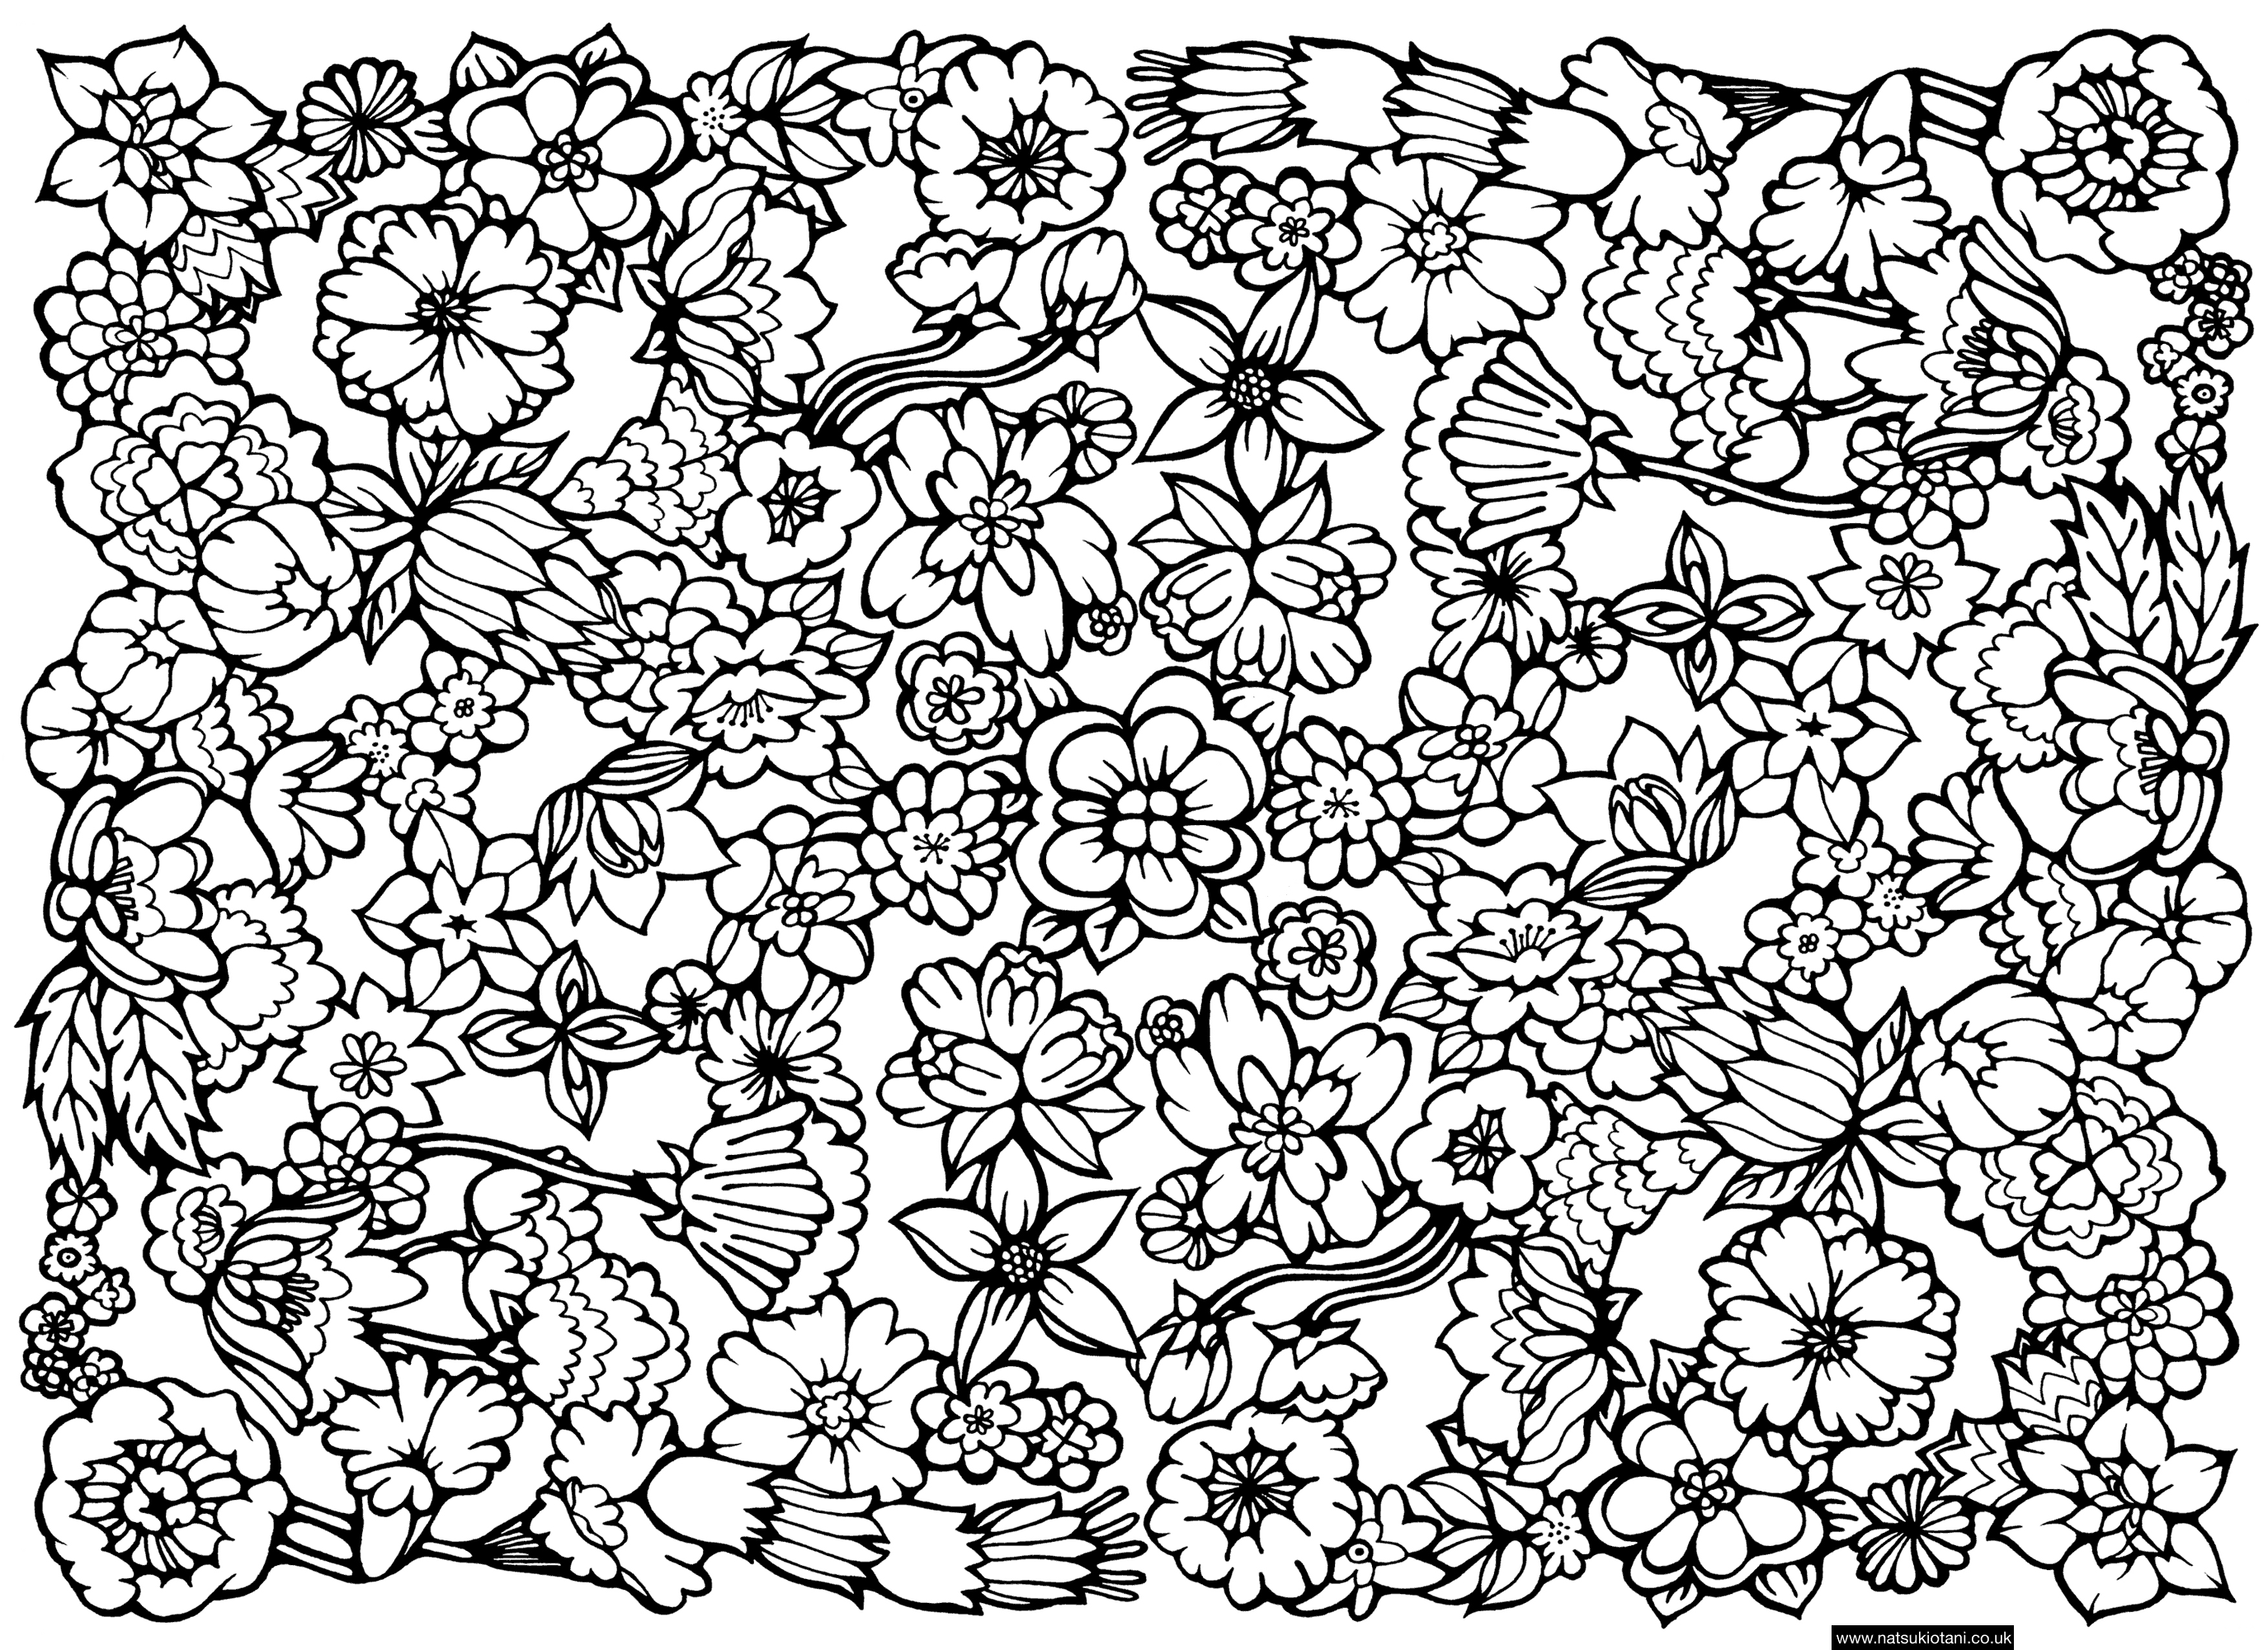 2749x2000 Free Adult Coloring Pages Mandalas And More